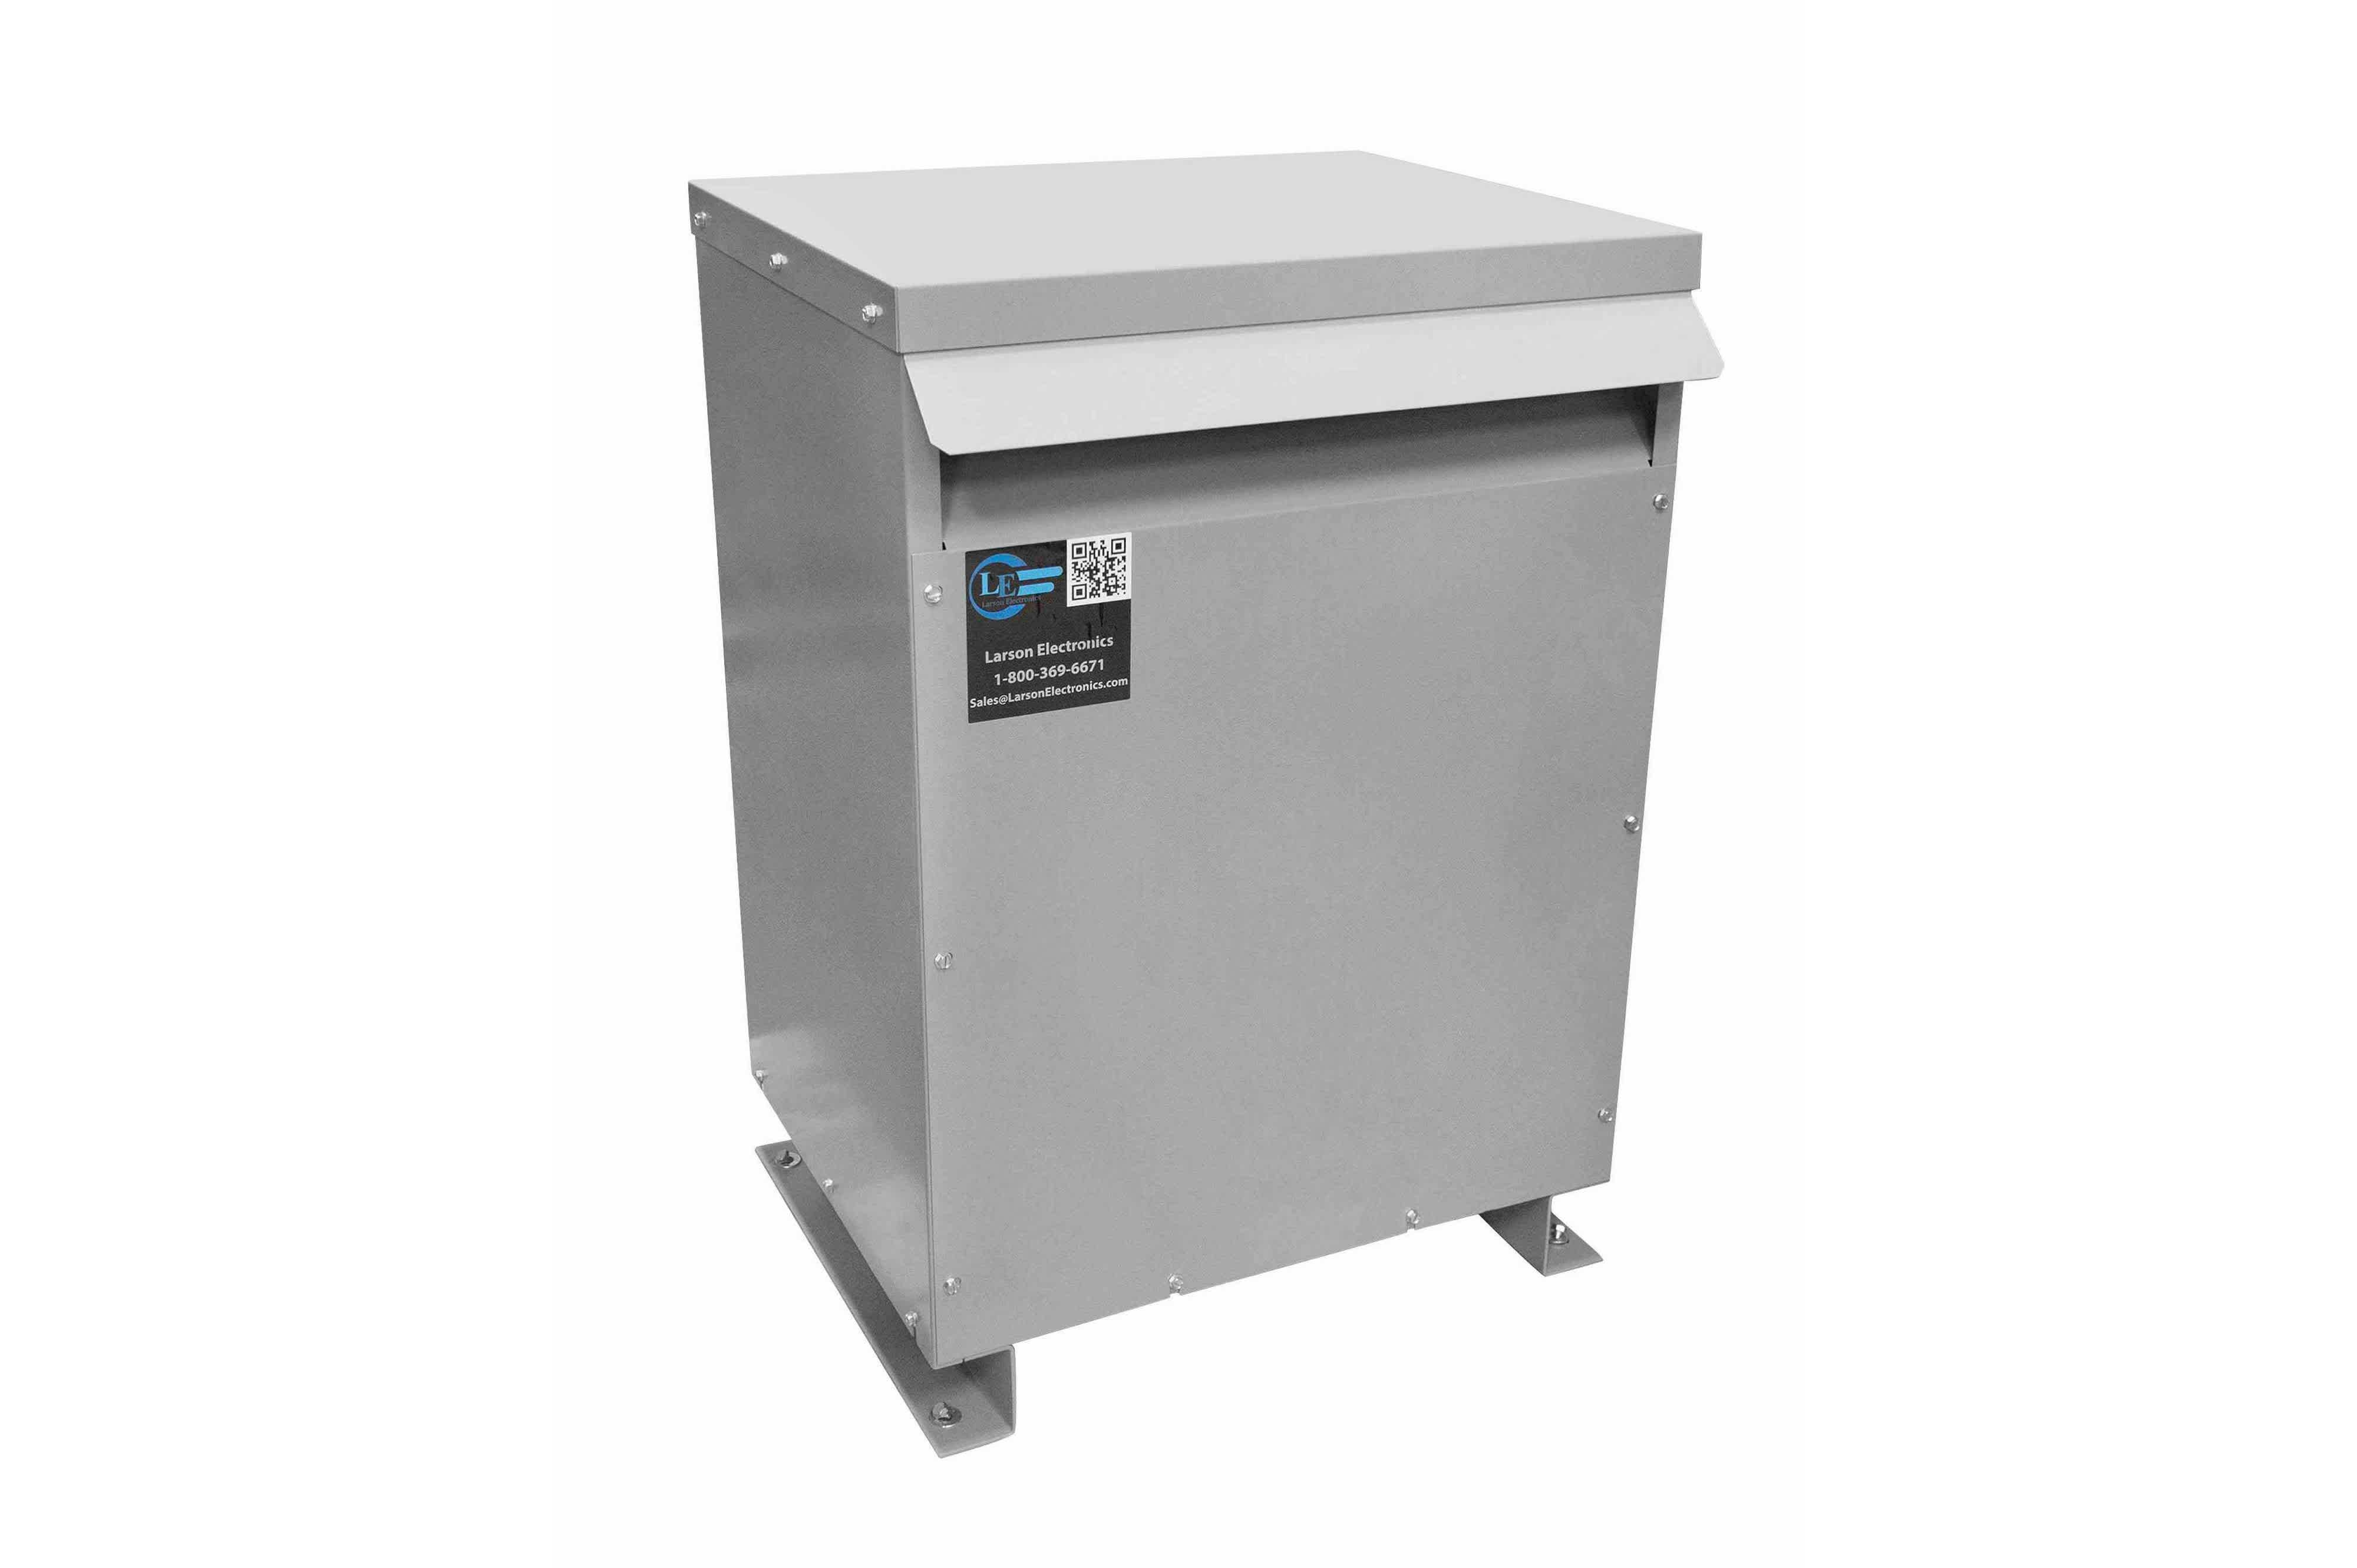 400 kVA 3PH DOE Transformer, 208V Delta Primary, 240V/120 Delta Secondary, N3R, Ventilated, 60 Hz